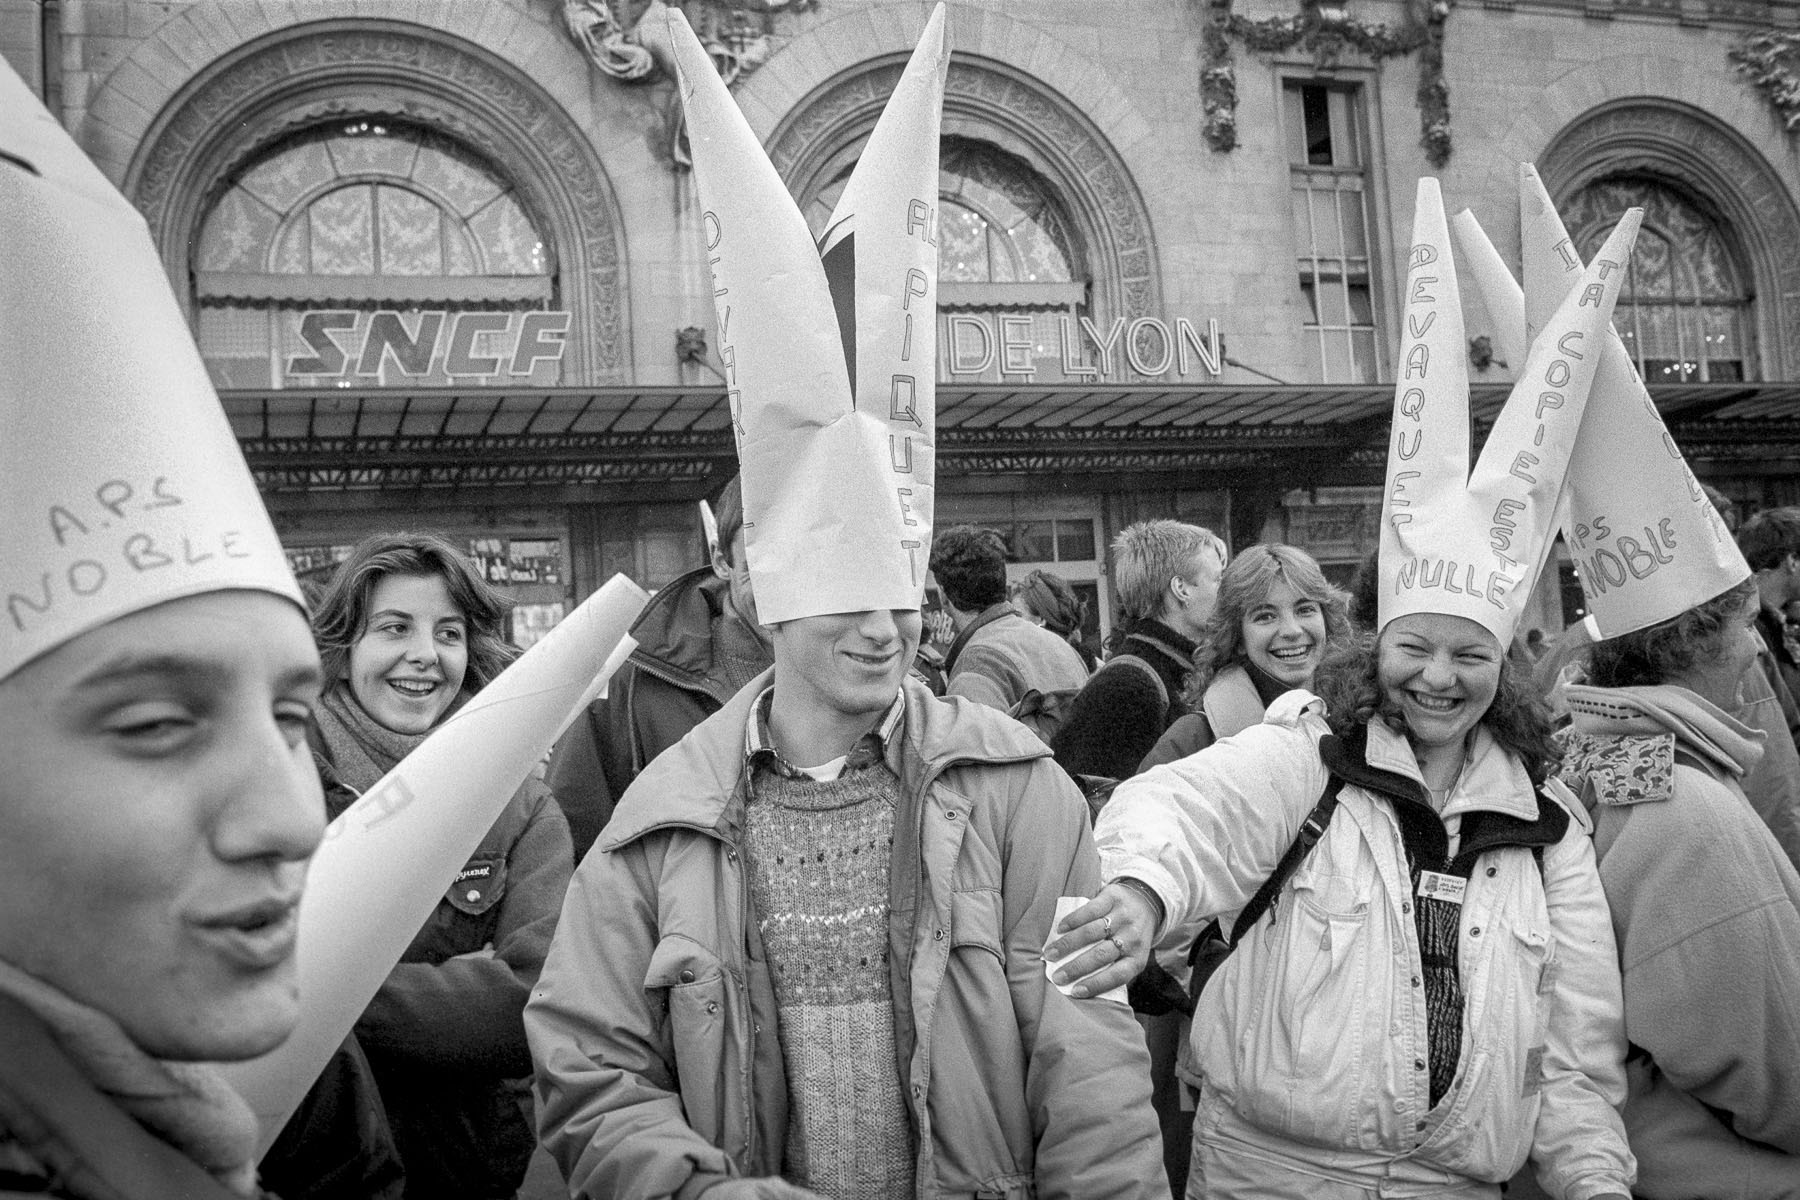 Students demonstration against Devaquet minister reform draft in front of Gare de Lyon on november 1986